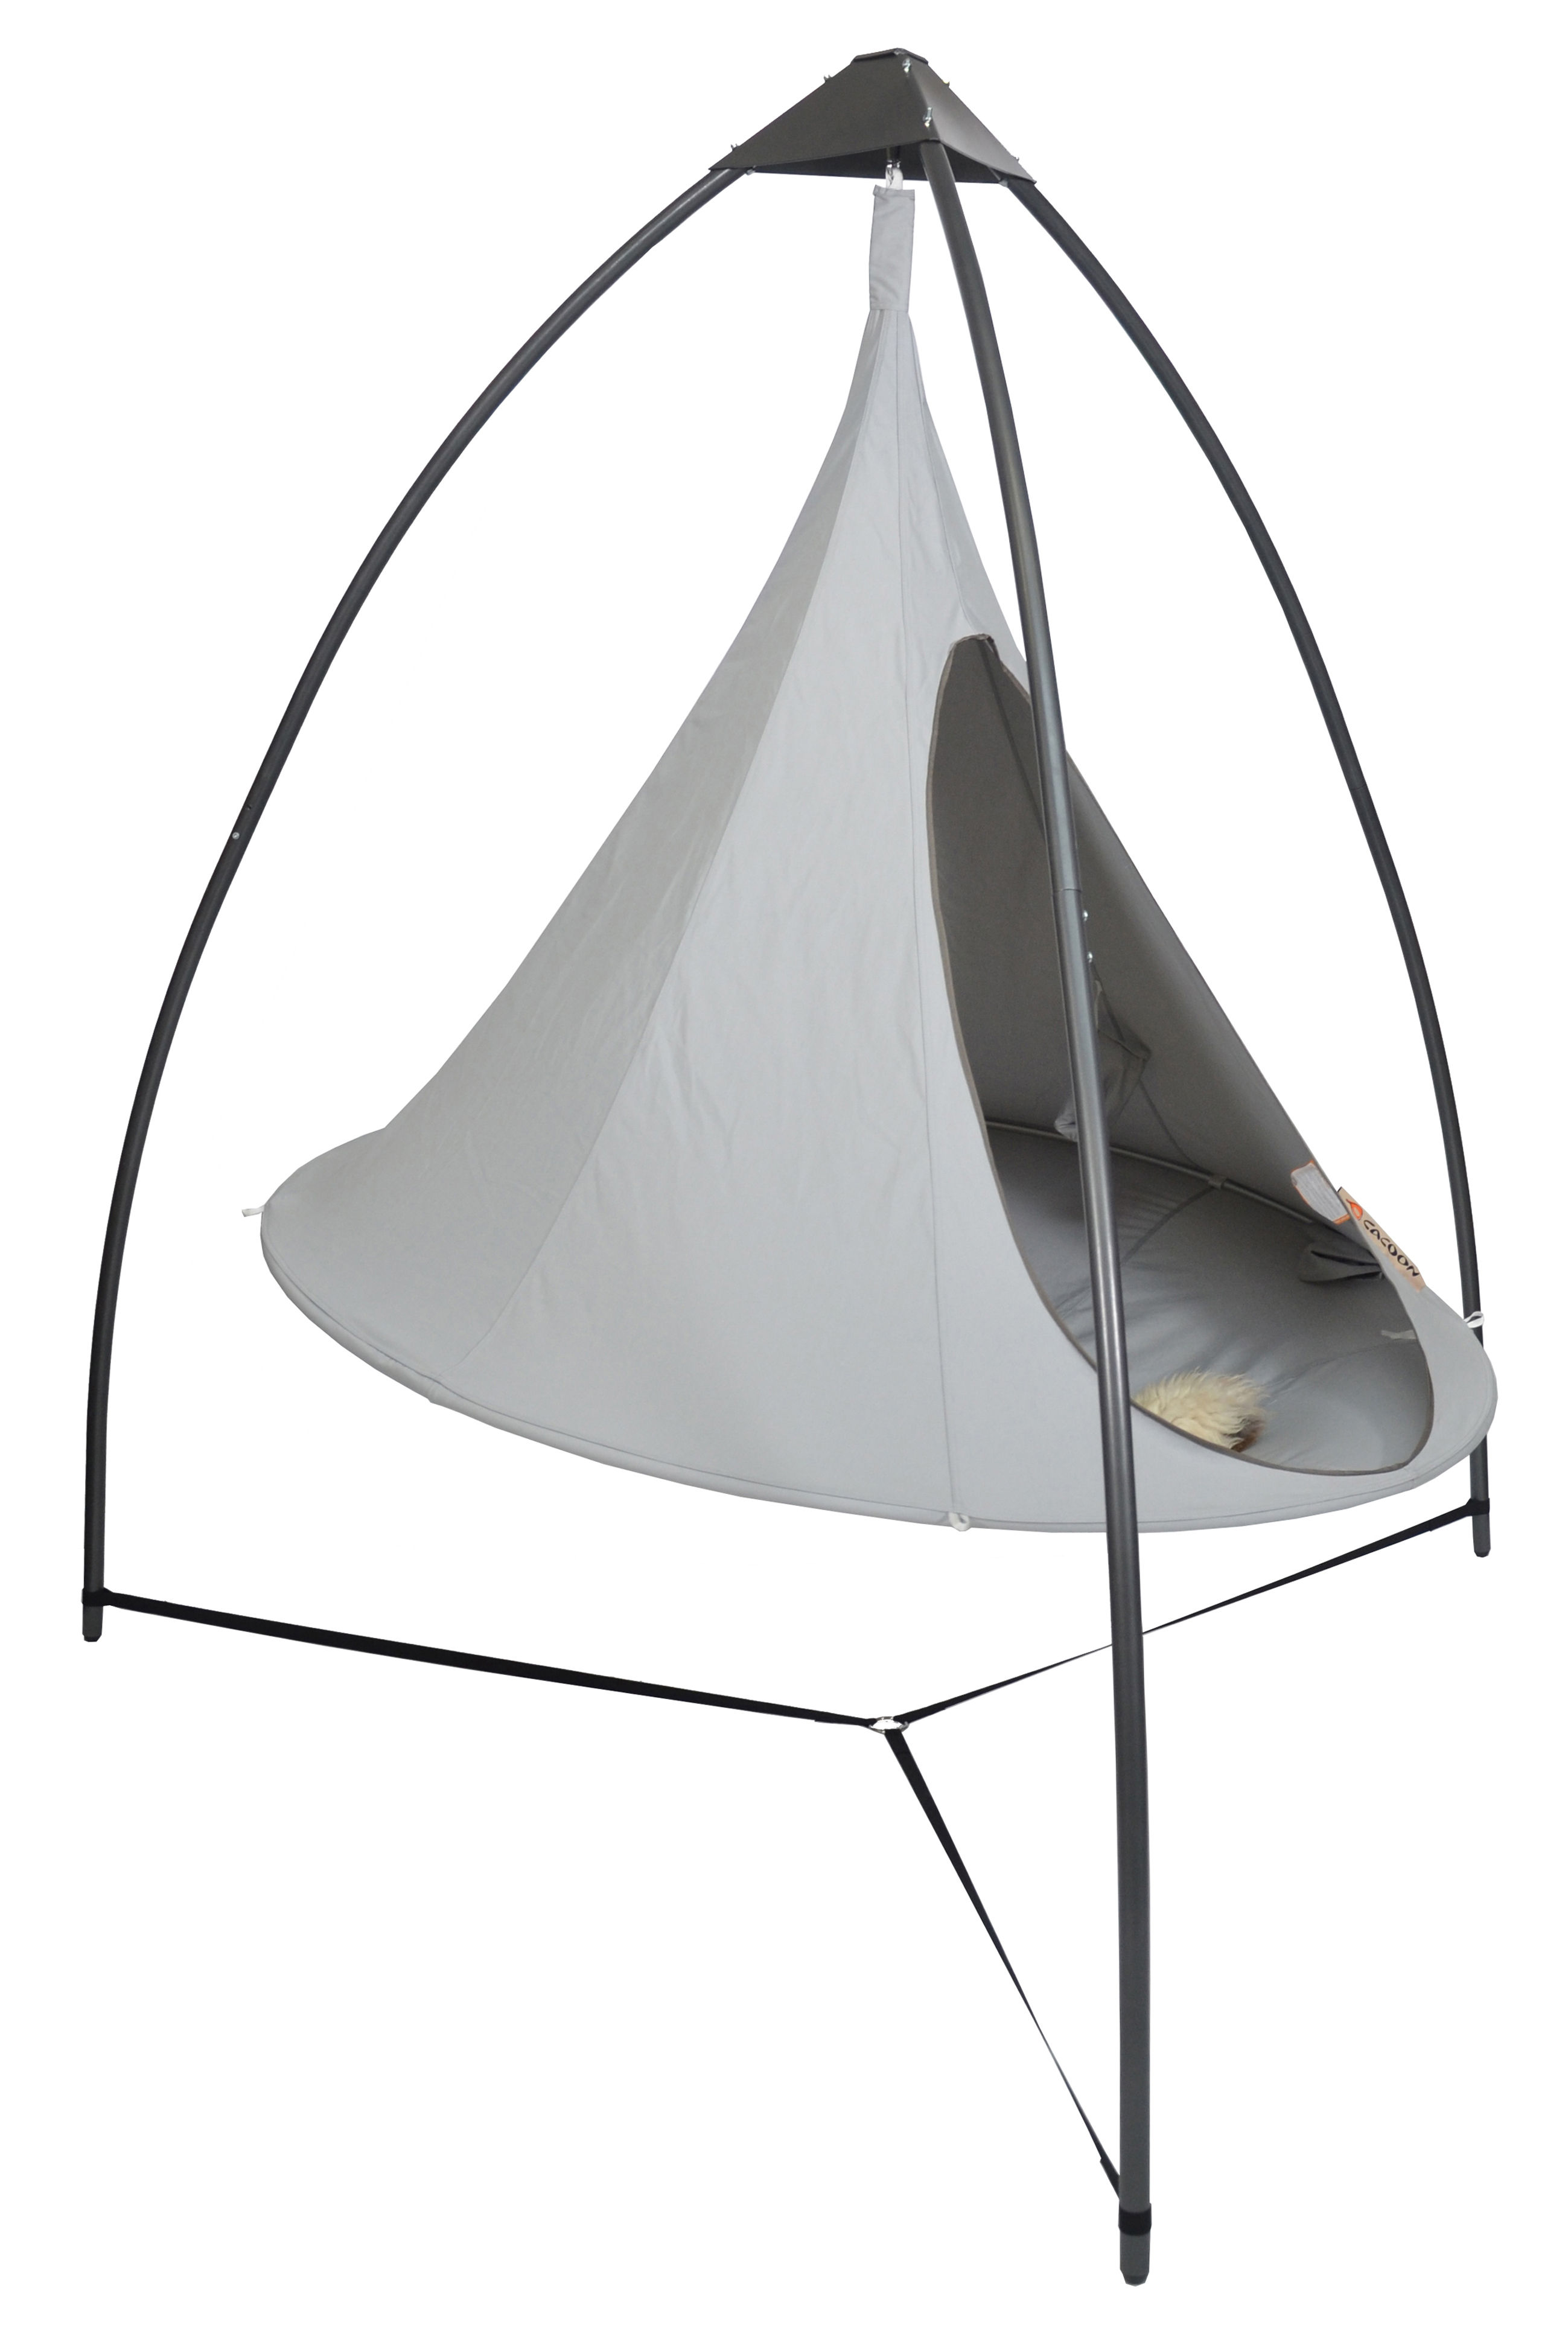 Cacoon Structure To Hang Up Cacoon Tents By Cacoon